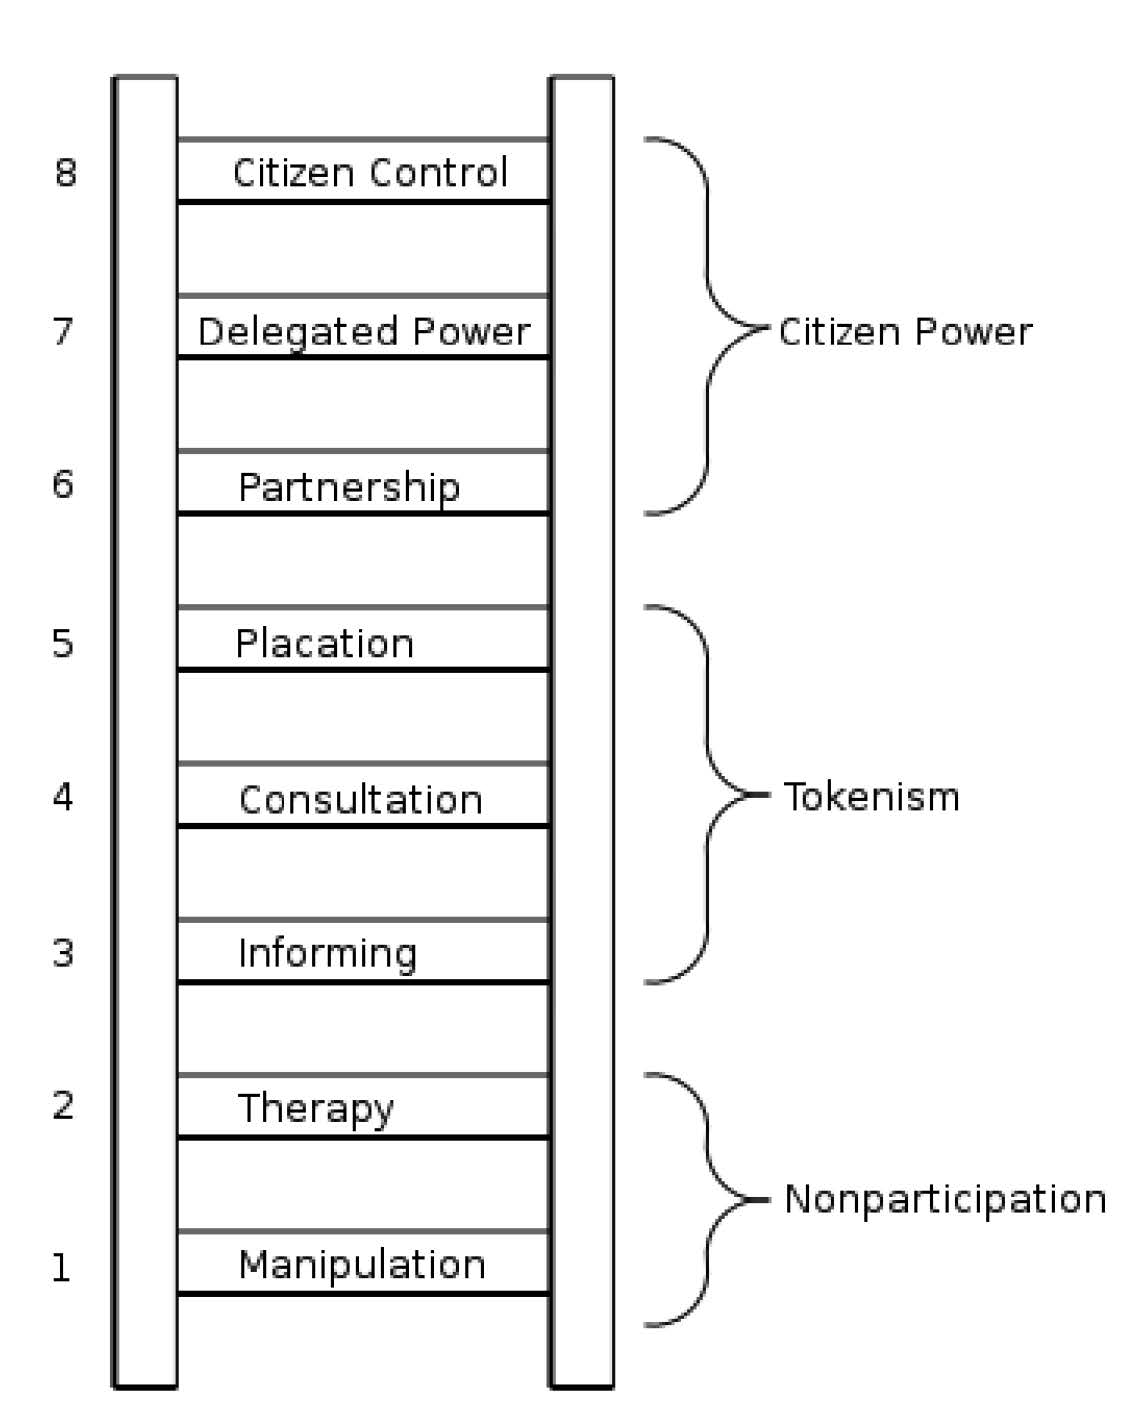 "Figure 10: The Ladder of Citizen Participation was designed in 1969 by then special assistant to the U.S. Department of Housing, Education and Welfare (""HUD"") Sherry Arnstein. She used it to support a set of ideas she promoted in a white paper of the same name that was published the same year in the Journal of the American Association. Among other key points that she articulated in this paper, Arnstein argued that some participation initiatives that appeared to involve the participation of citizens from a given community were merely rhetorical (these were described as the bottom rungs of the ladder in the sub-category titled ""Nonparticipation"")."